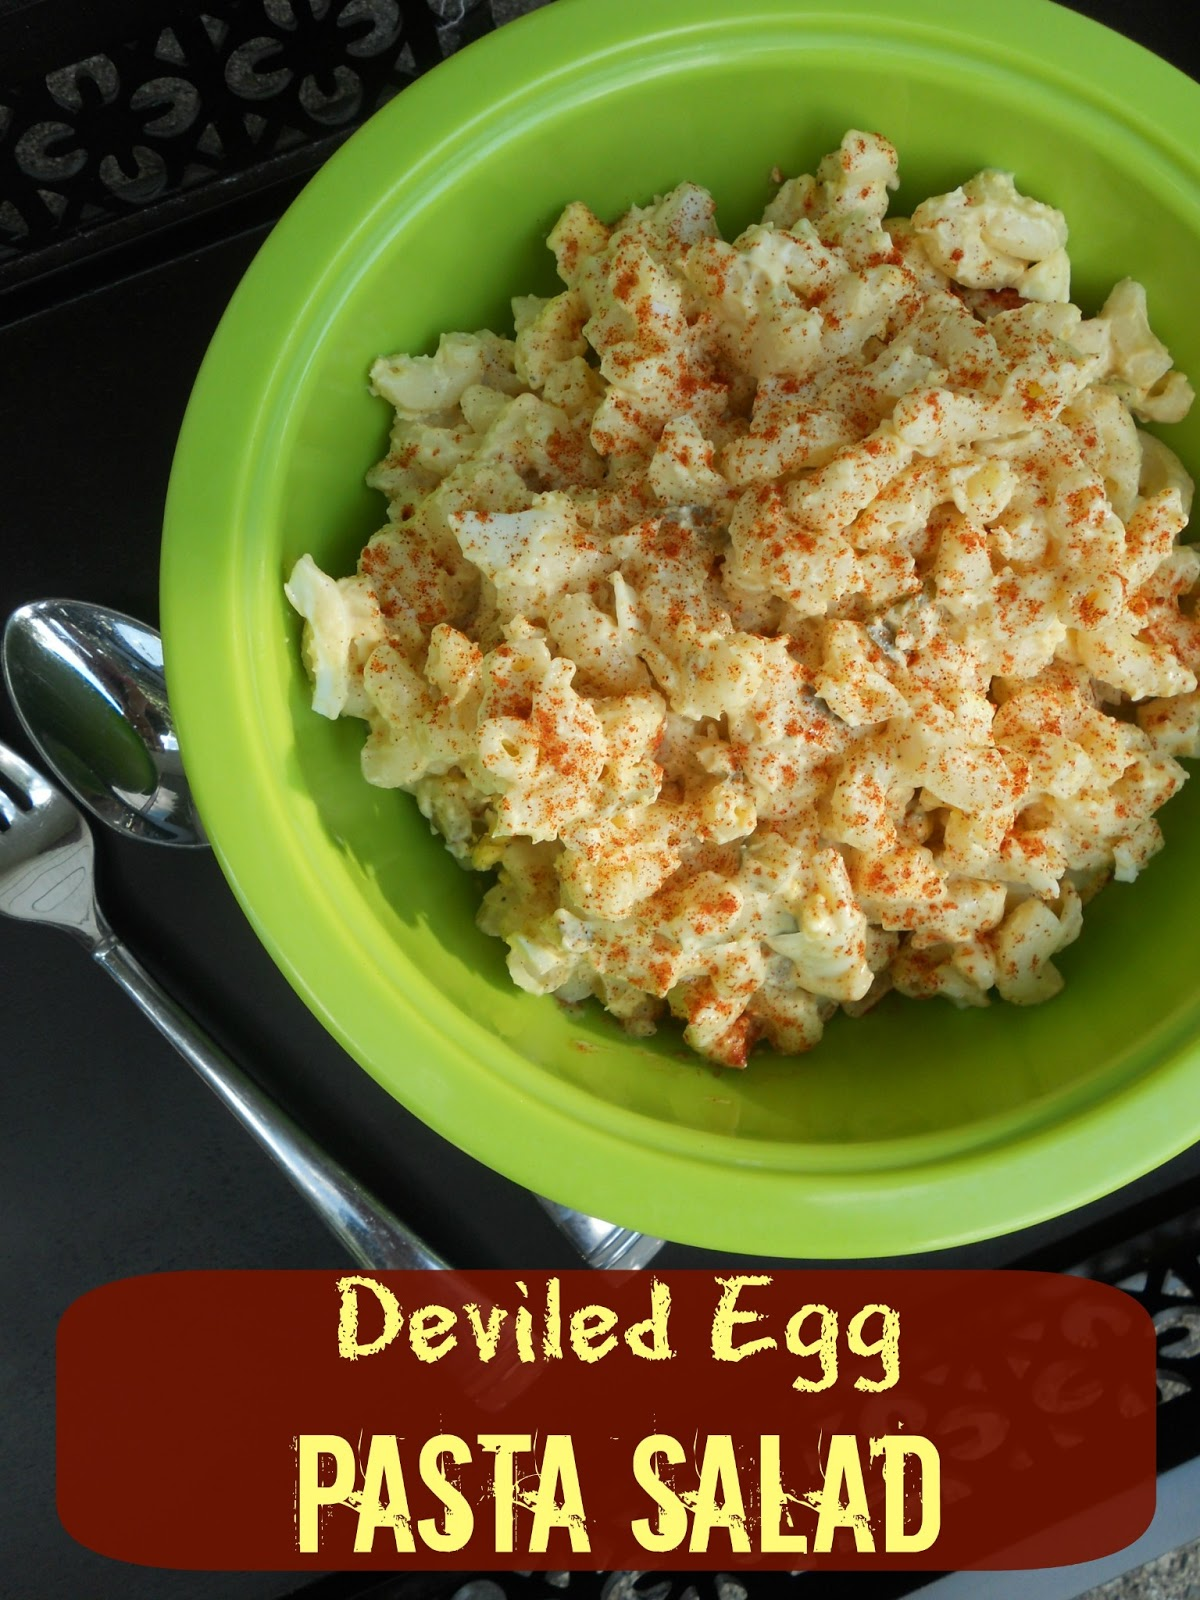 Ally's Sweet and Savory Eats: Deviled Egg Pasta Salad